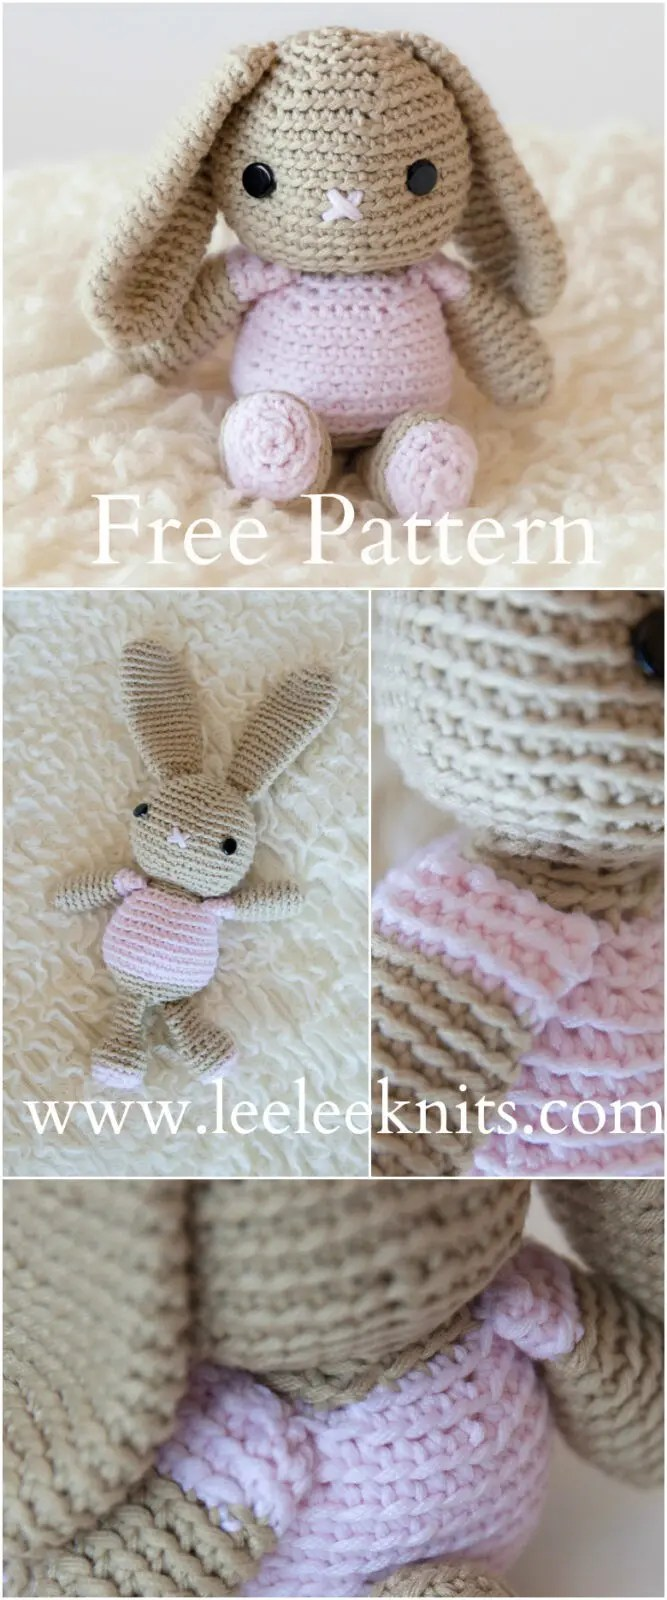 Free Crochet Pattern For A Rabbit : Leelee Knits Blog Archive Free Crochet Bunny Pattern ...